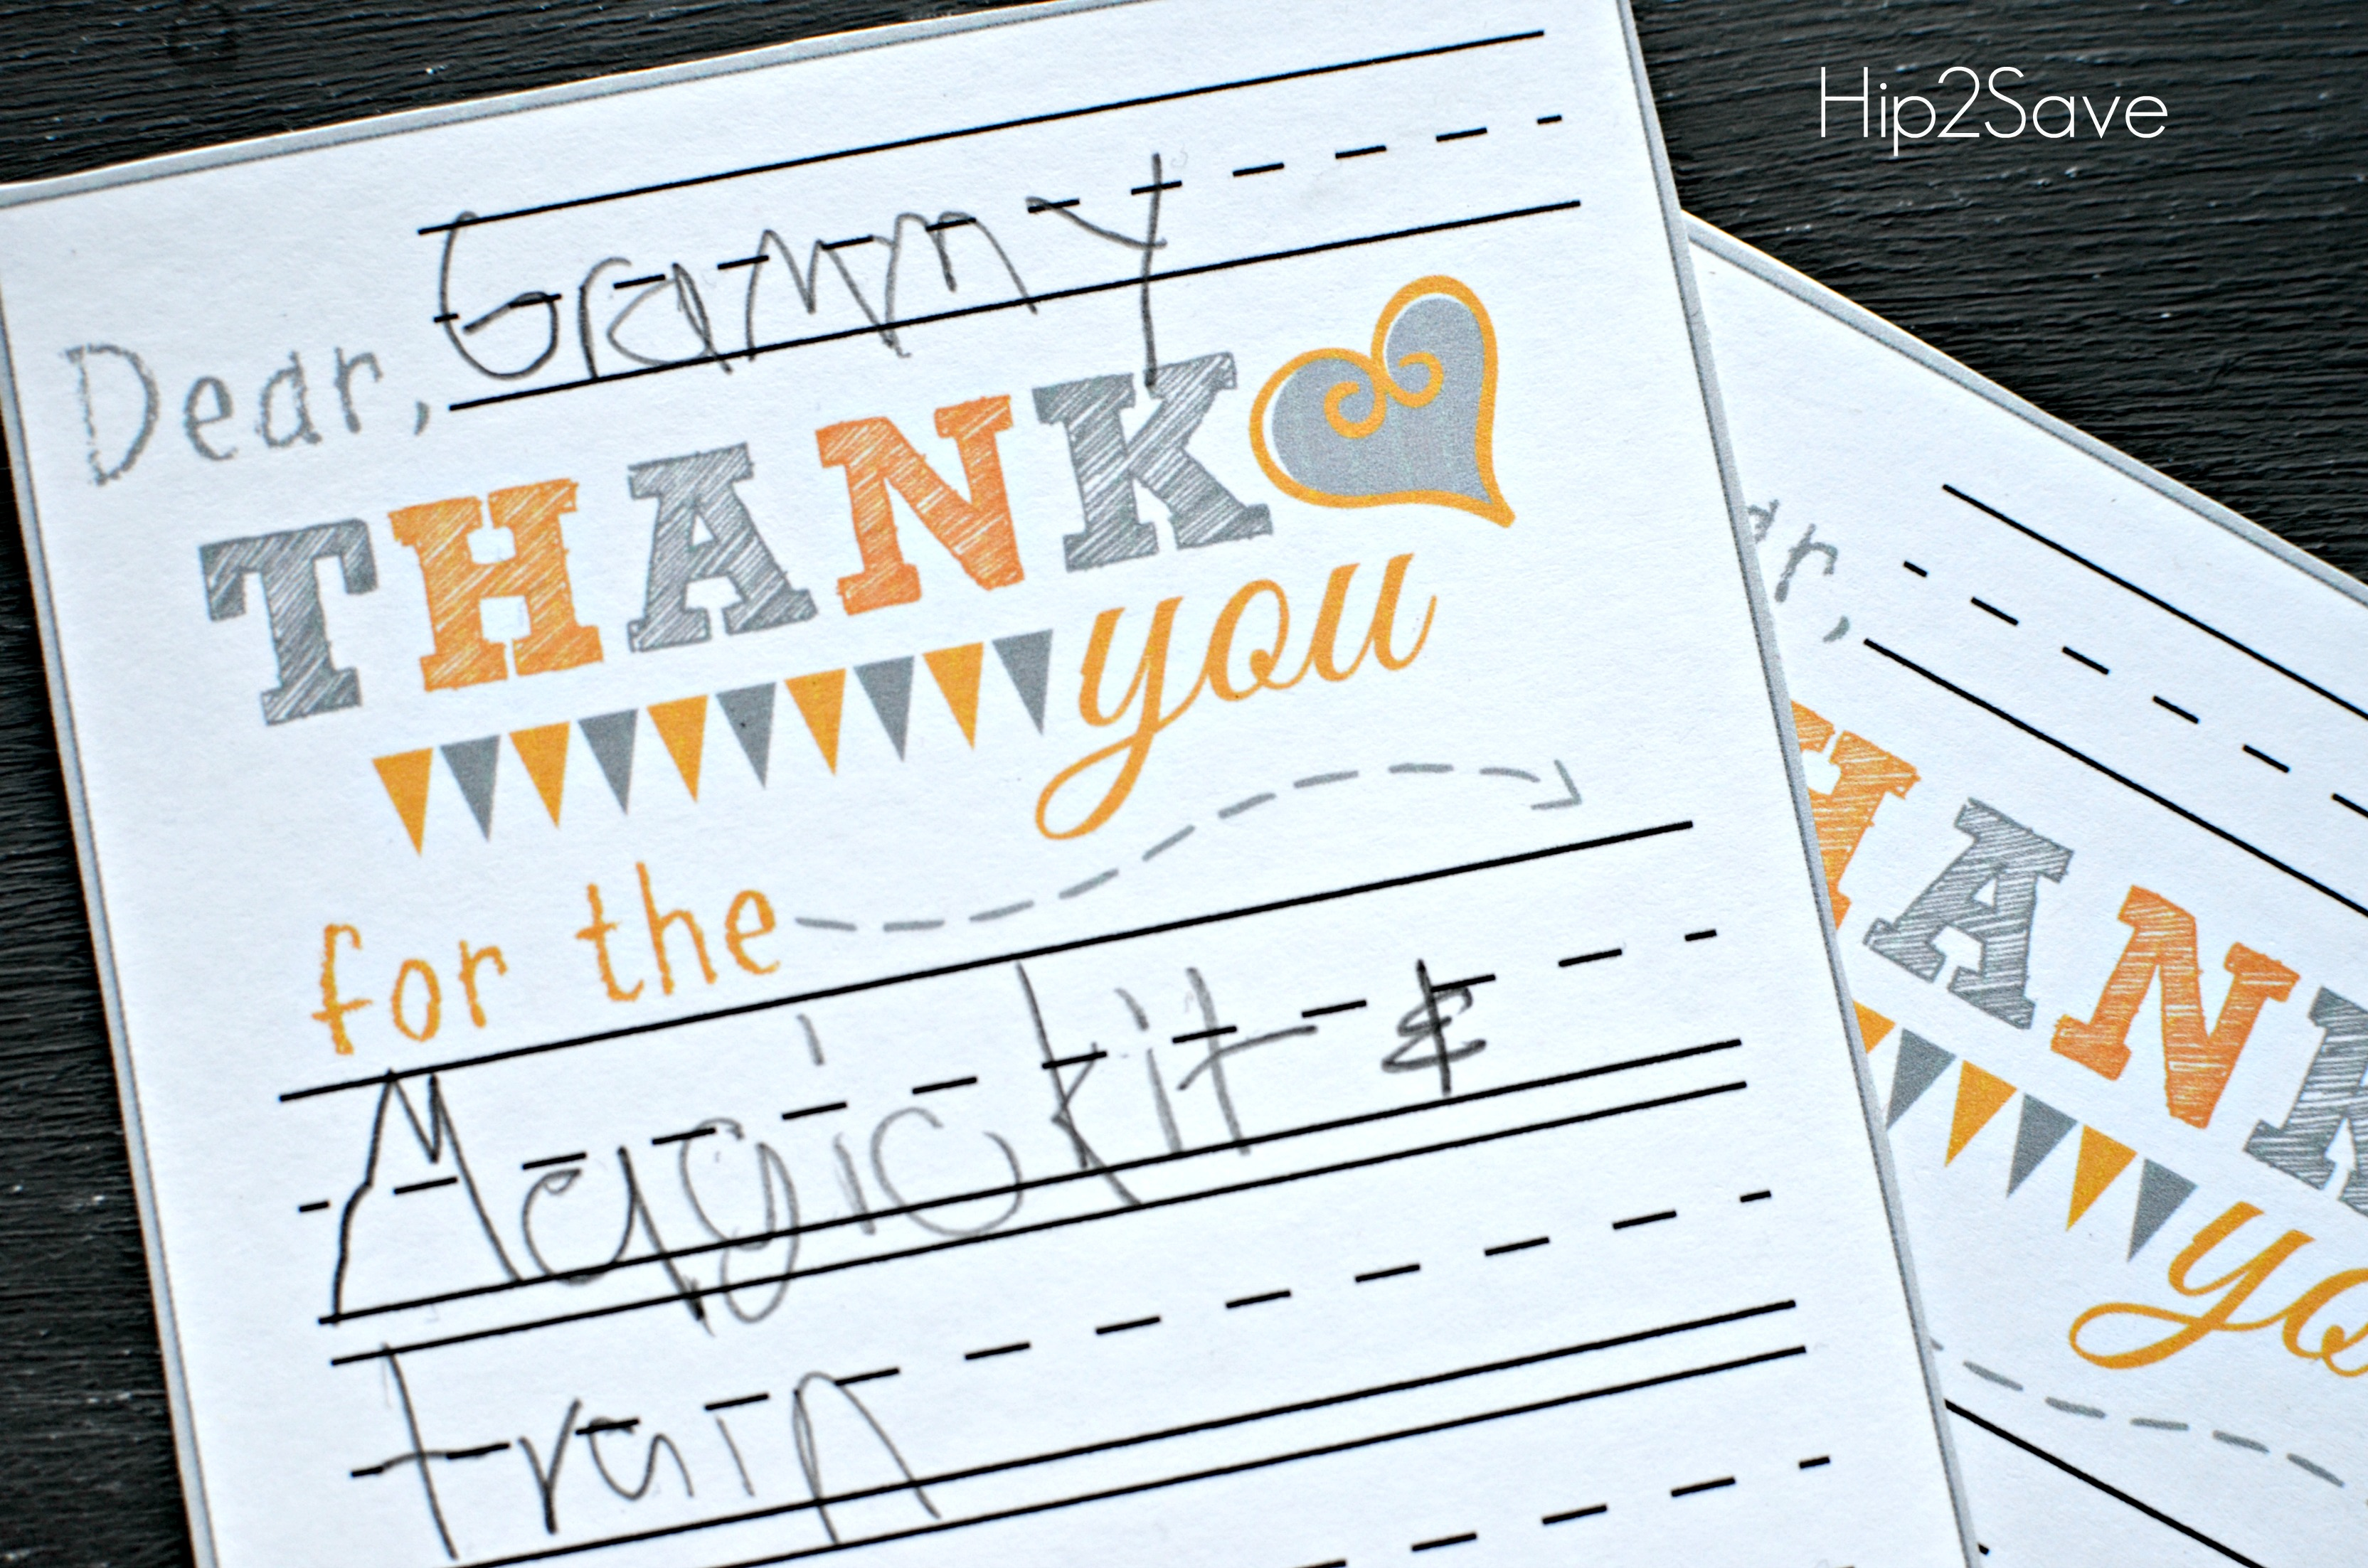 photo regarding Printable Thank You Cards for Kids named No cost Printable Thank Yourself Playing cards - Hip2Help save